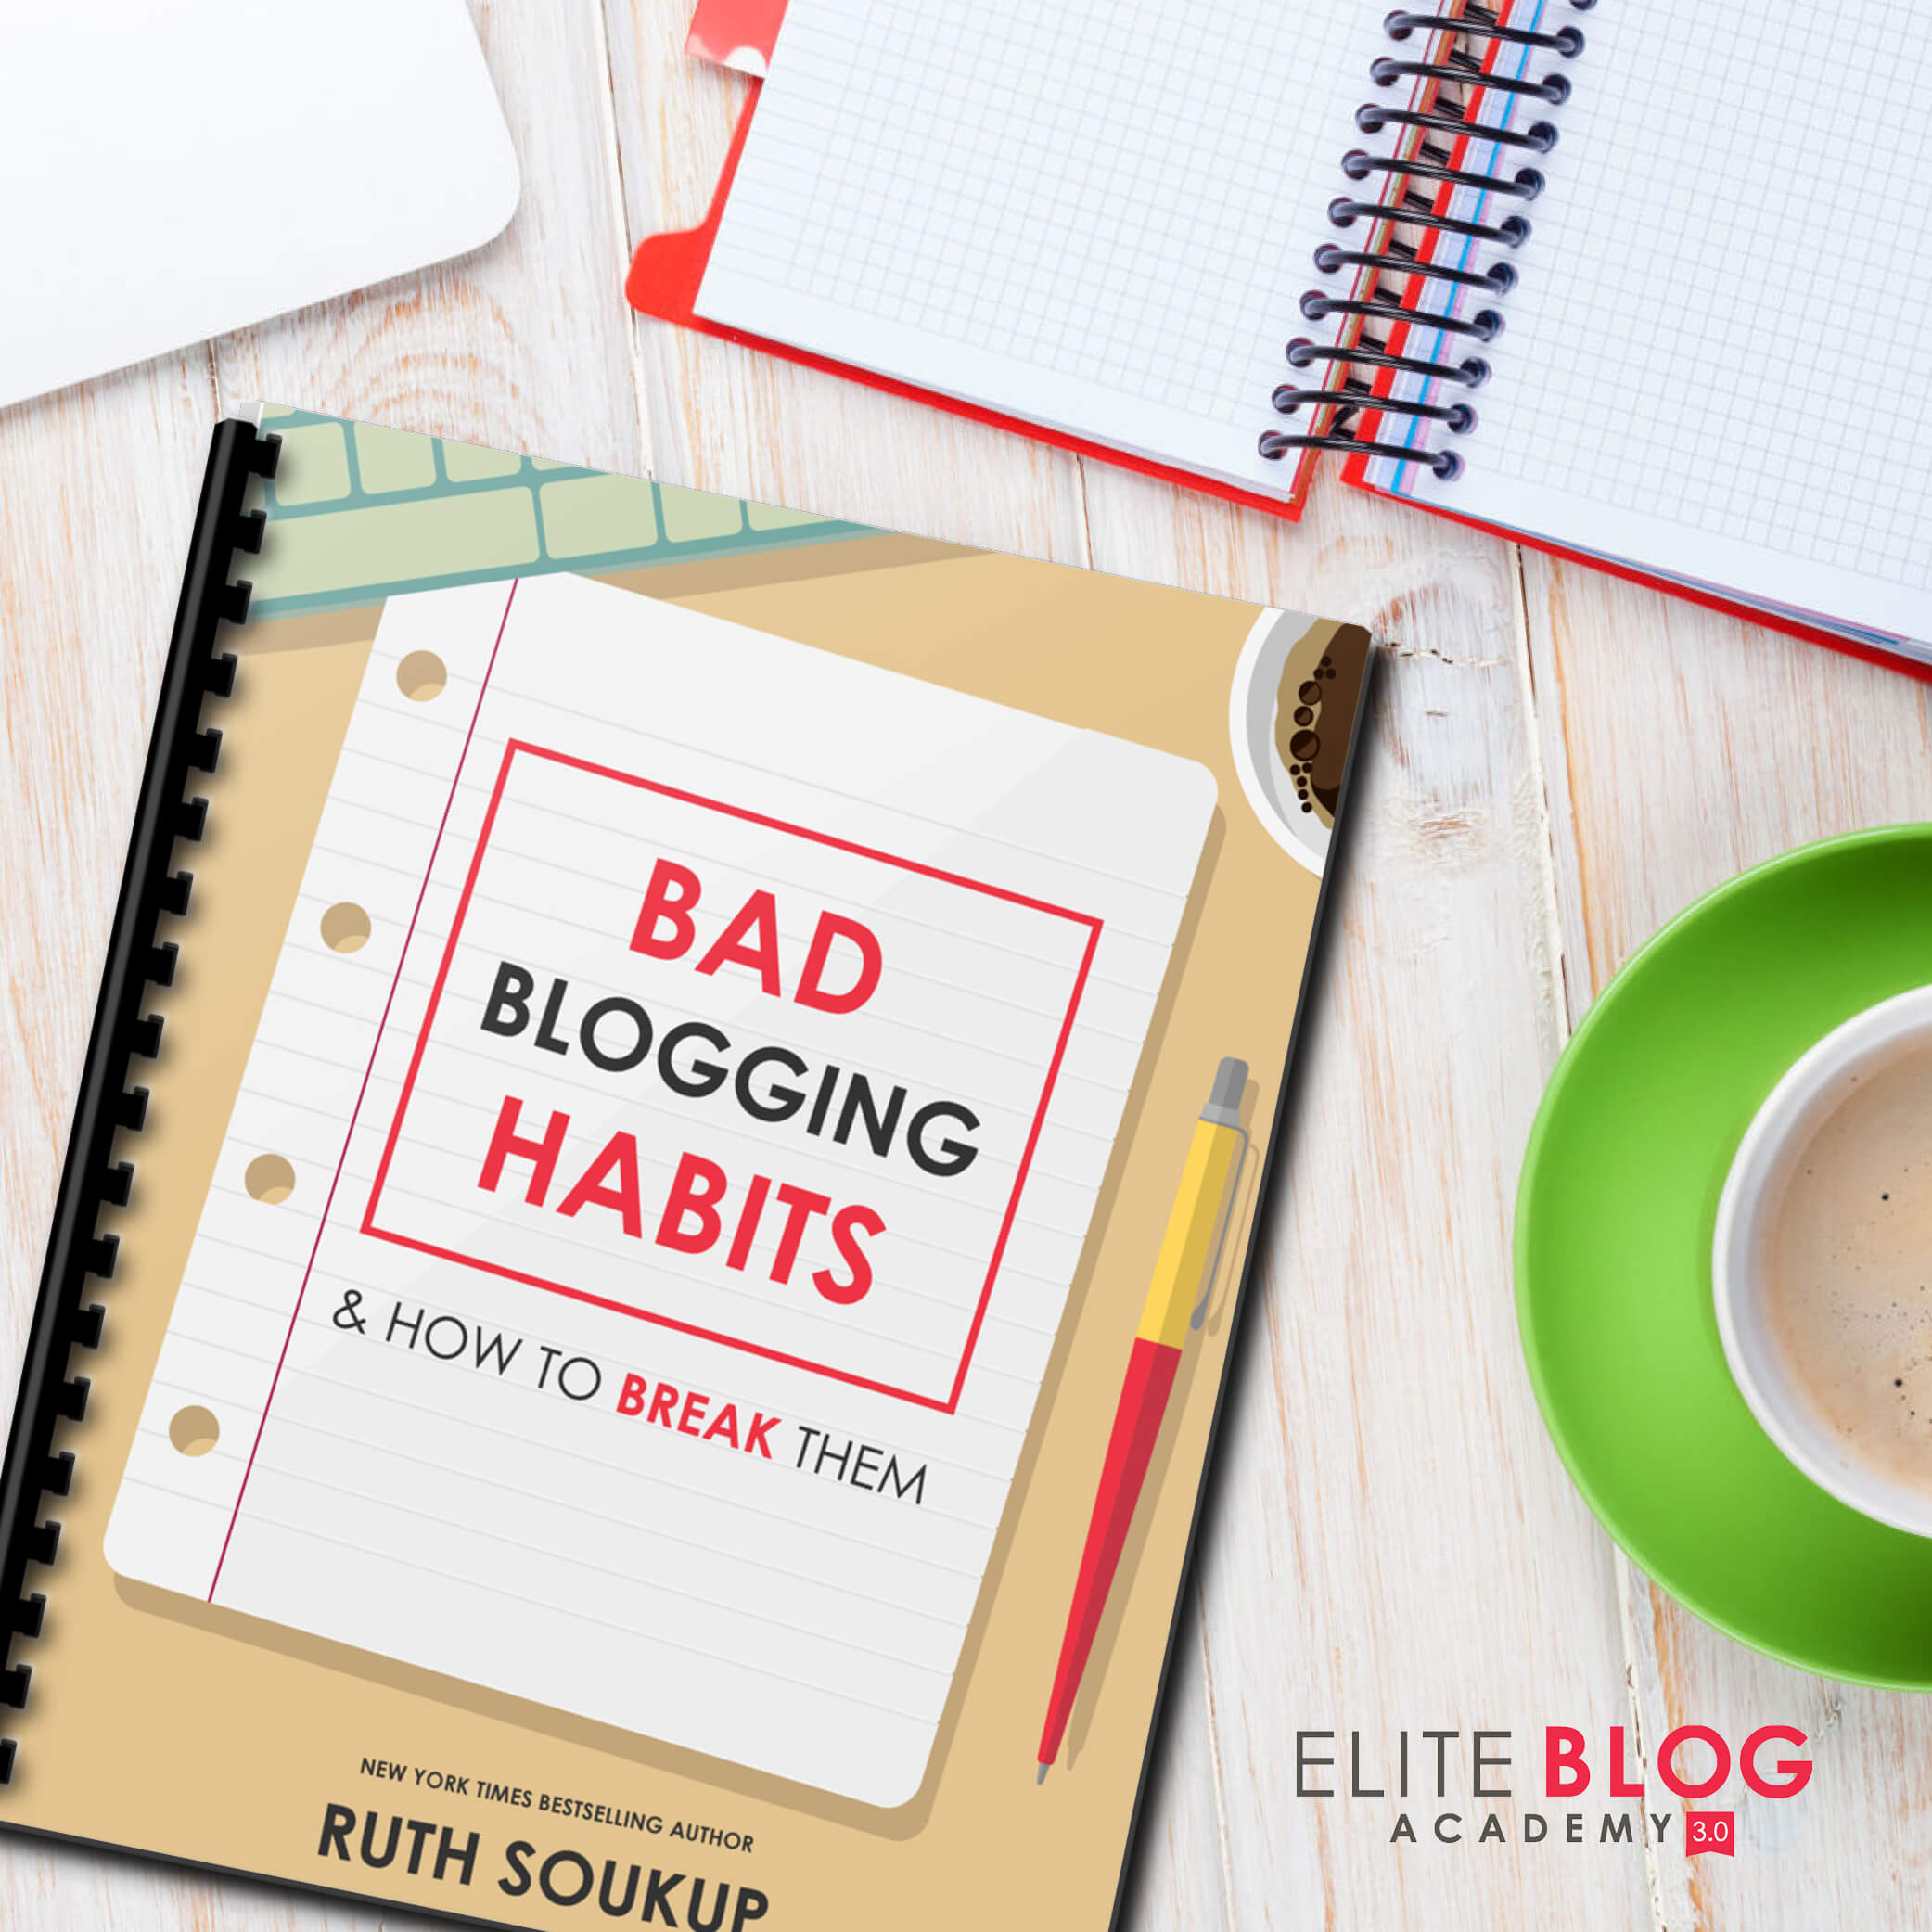 8 Bad Blogging Habits and How to Break Them